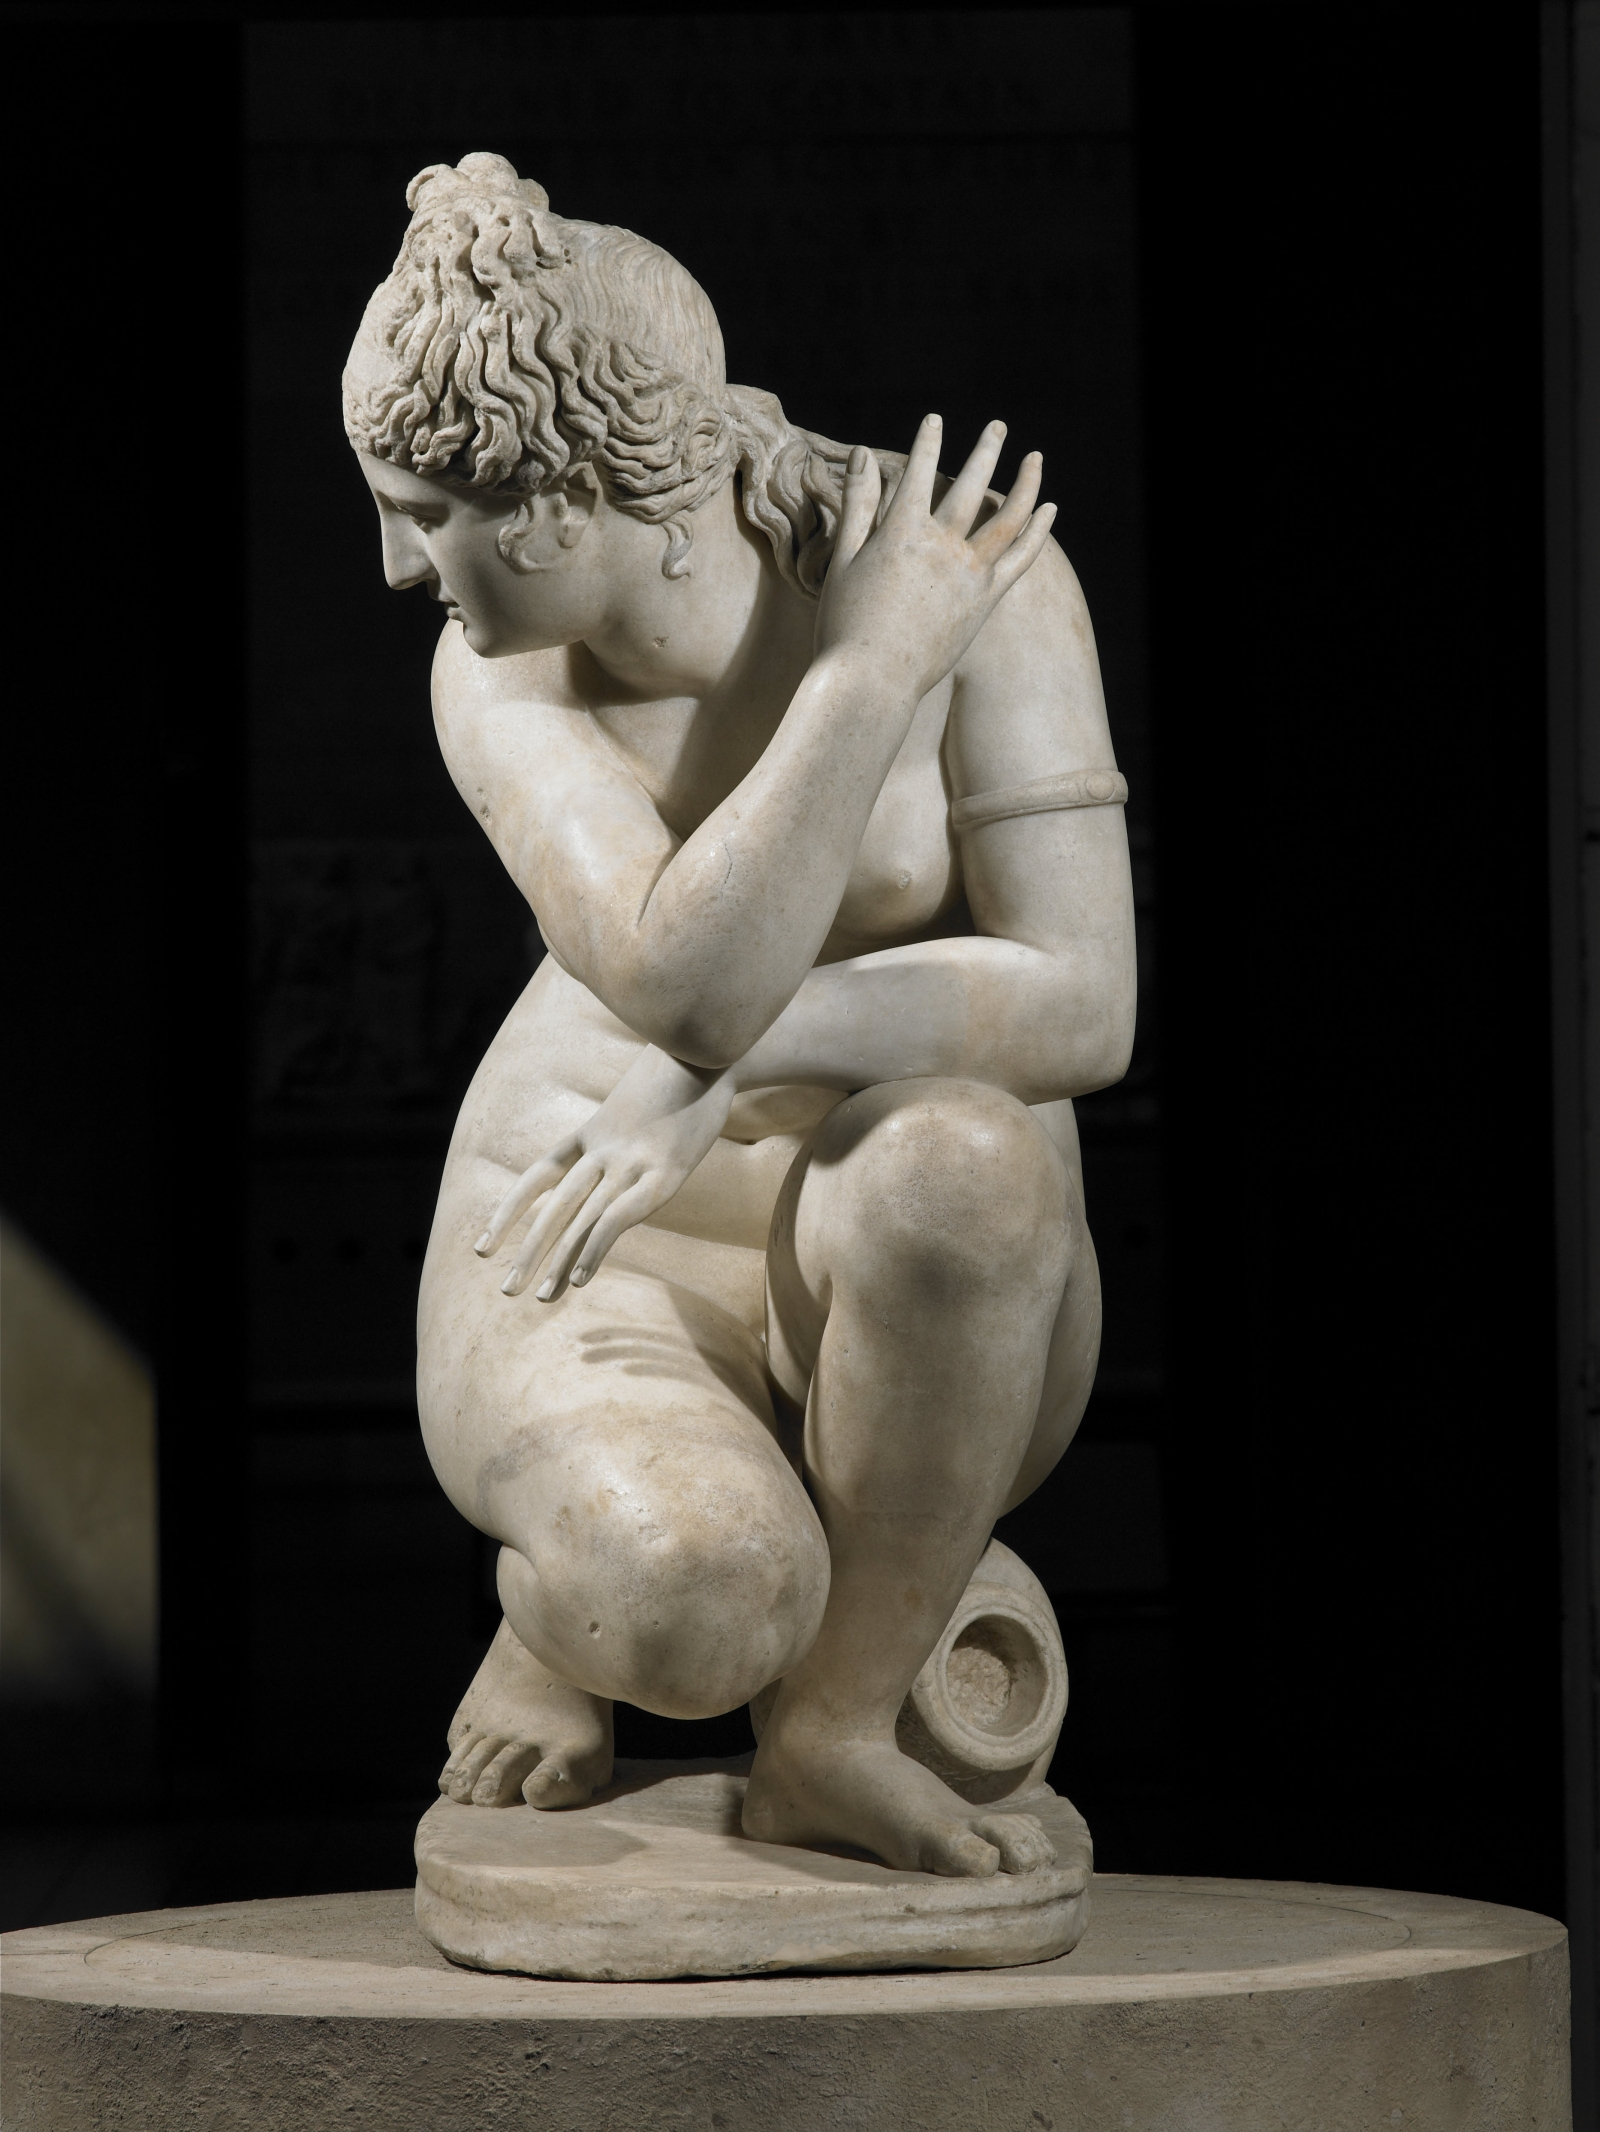 Naked statue of Aphrodite